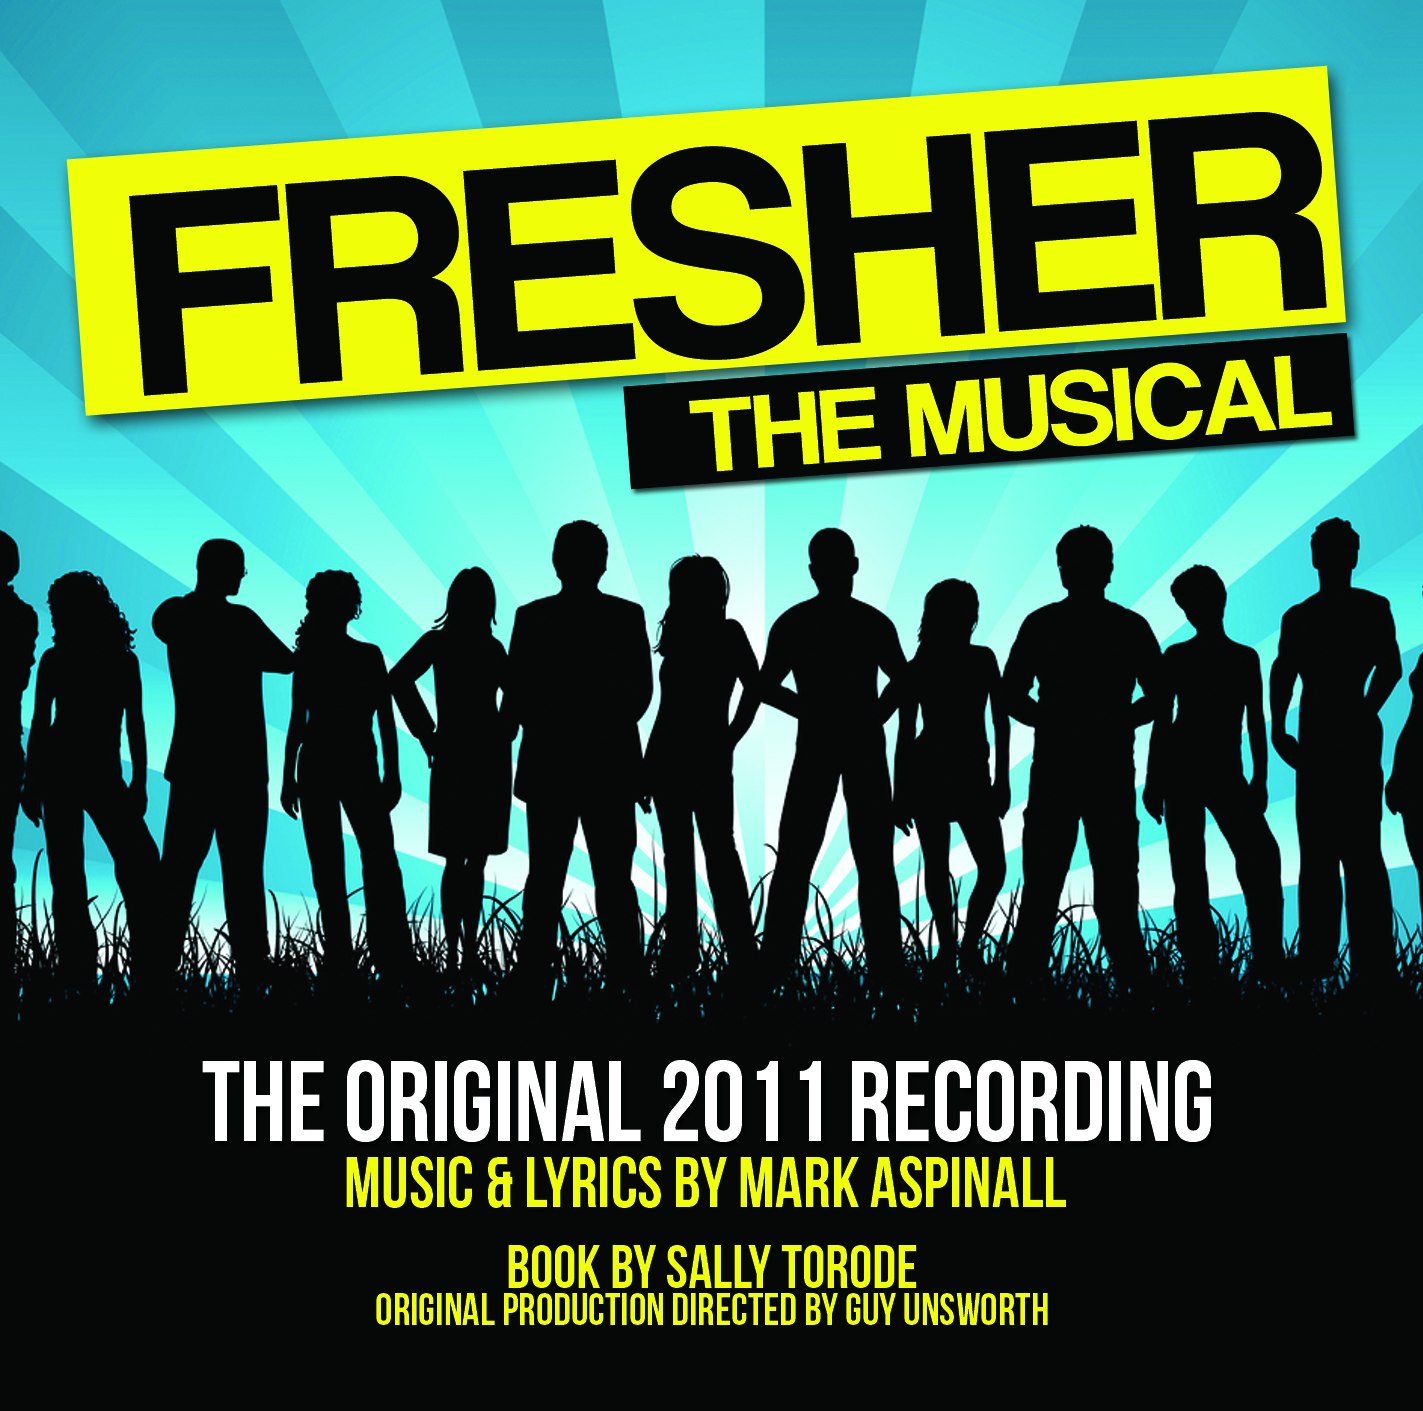 Fresher The Musical